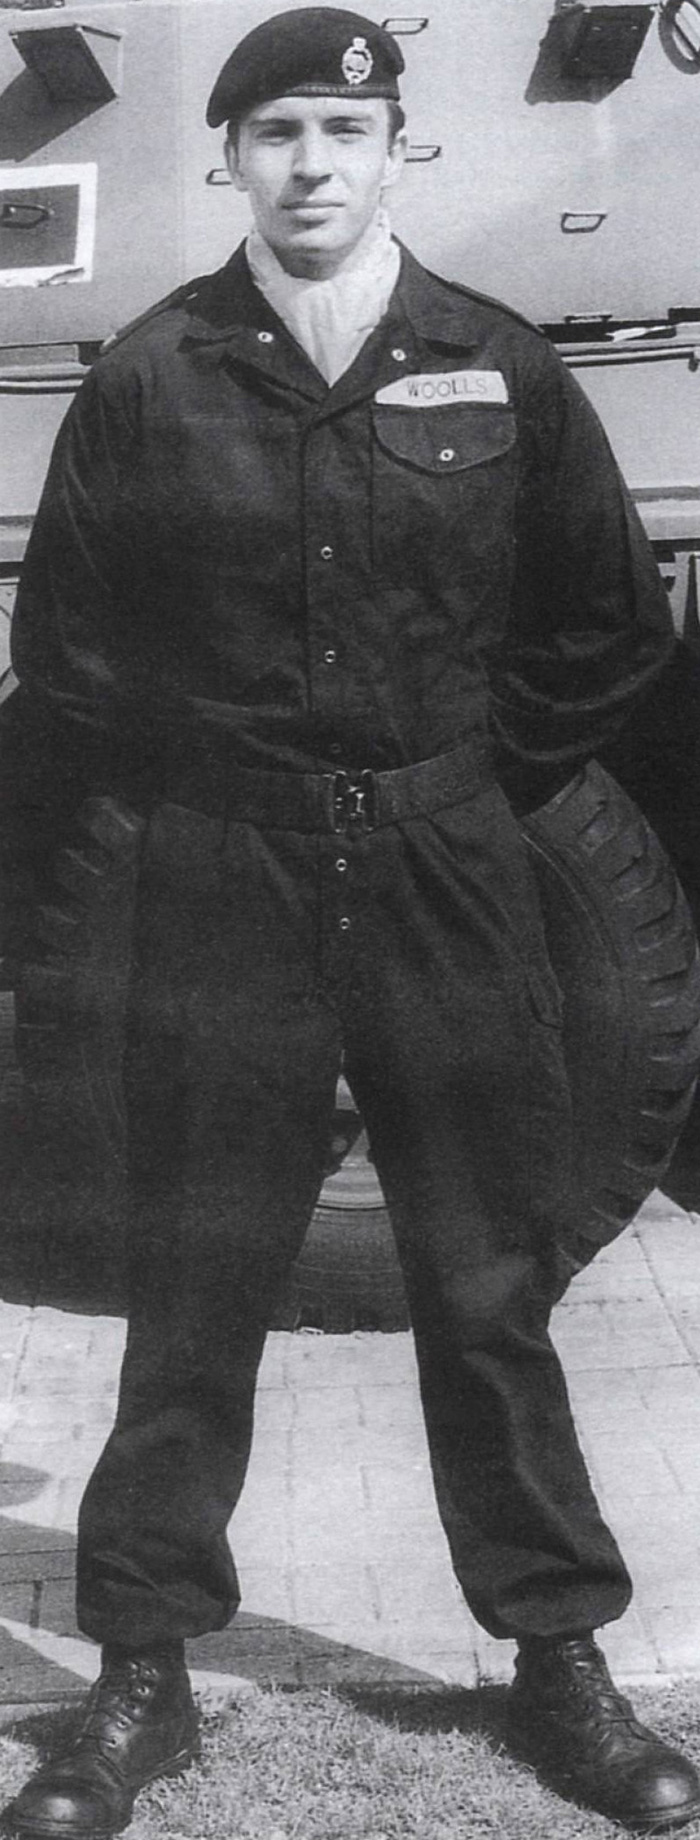 'Tankie' in the black beret and coveralls